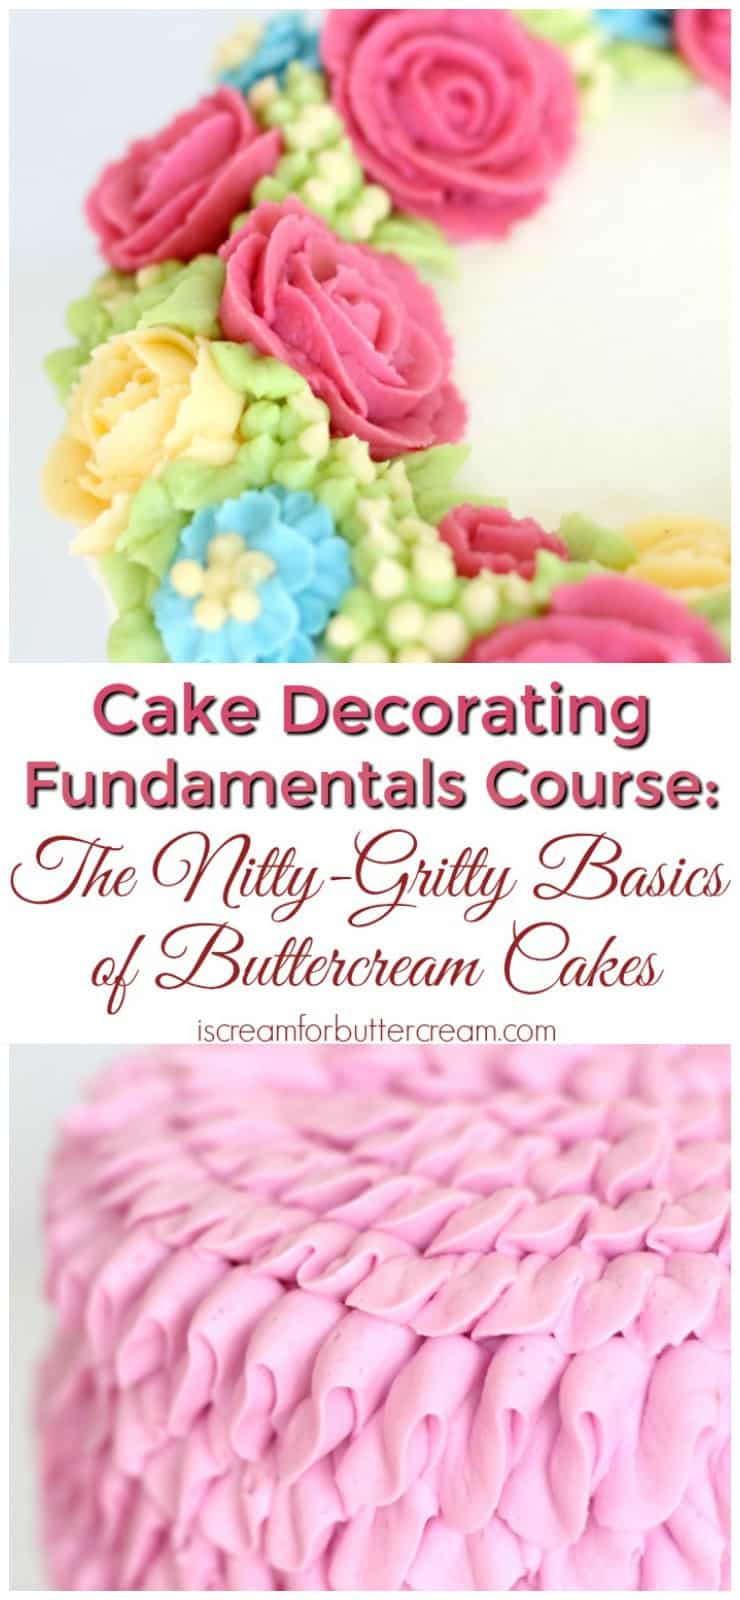 Cake Decorating Fundamentals Pinterest Graphic